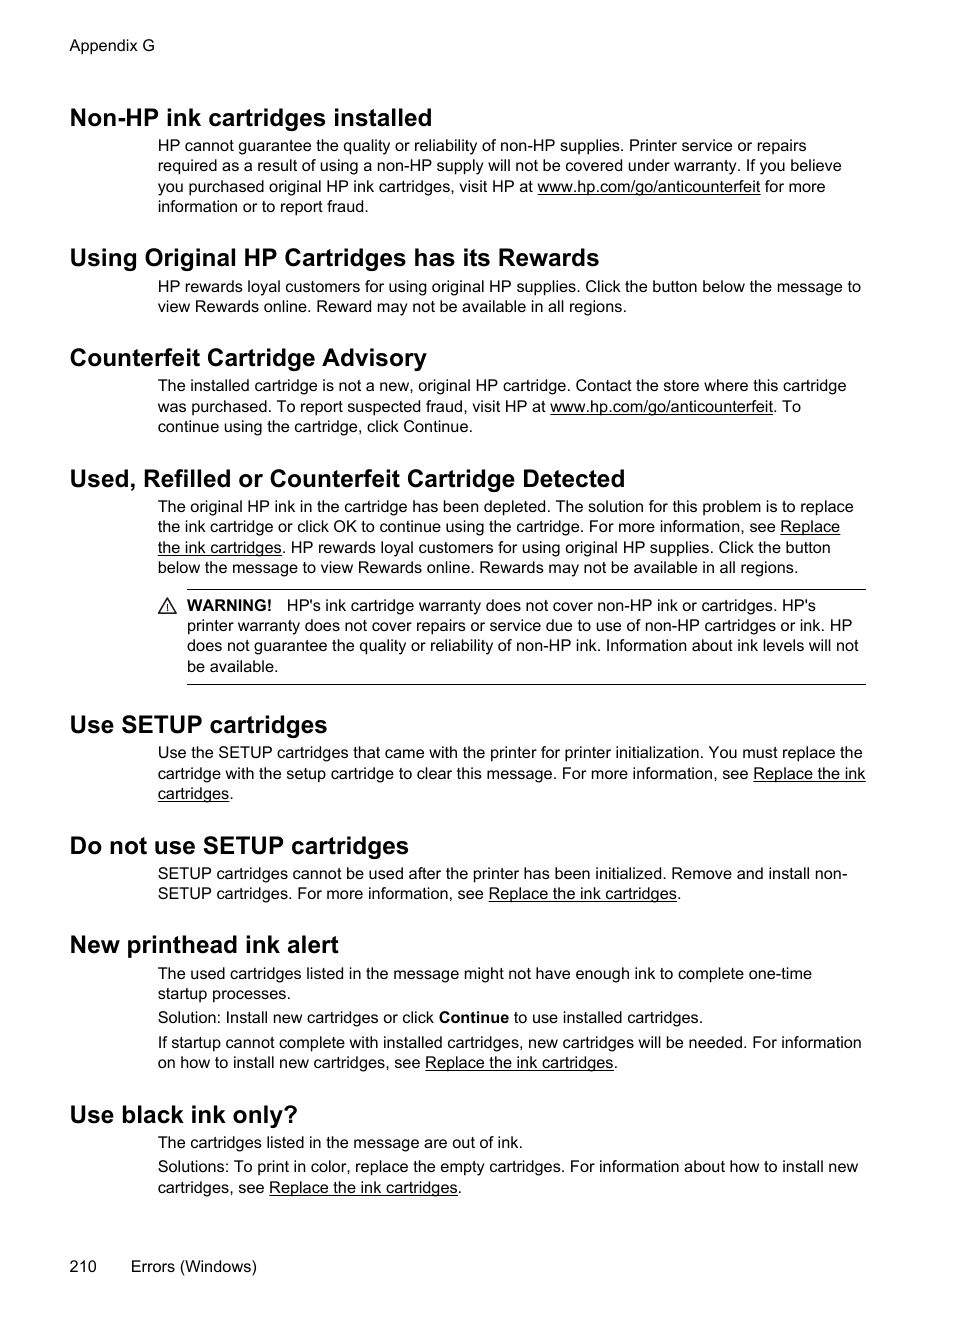 Non Hp Ink Cartridges Installed Using Original Has Its Rewards Counterfeit Cartridge Advisory